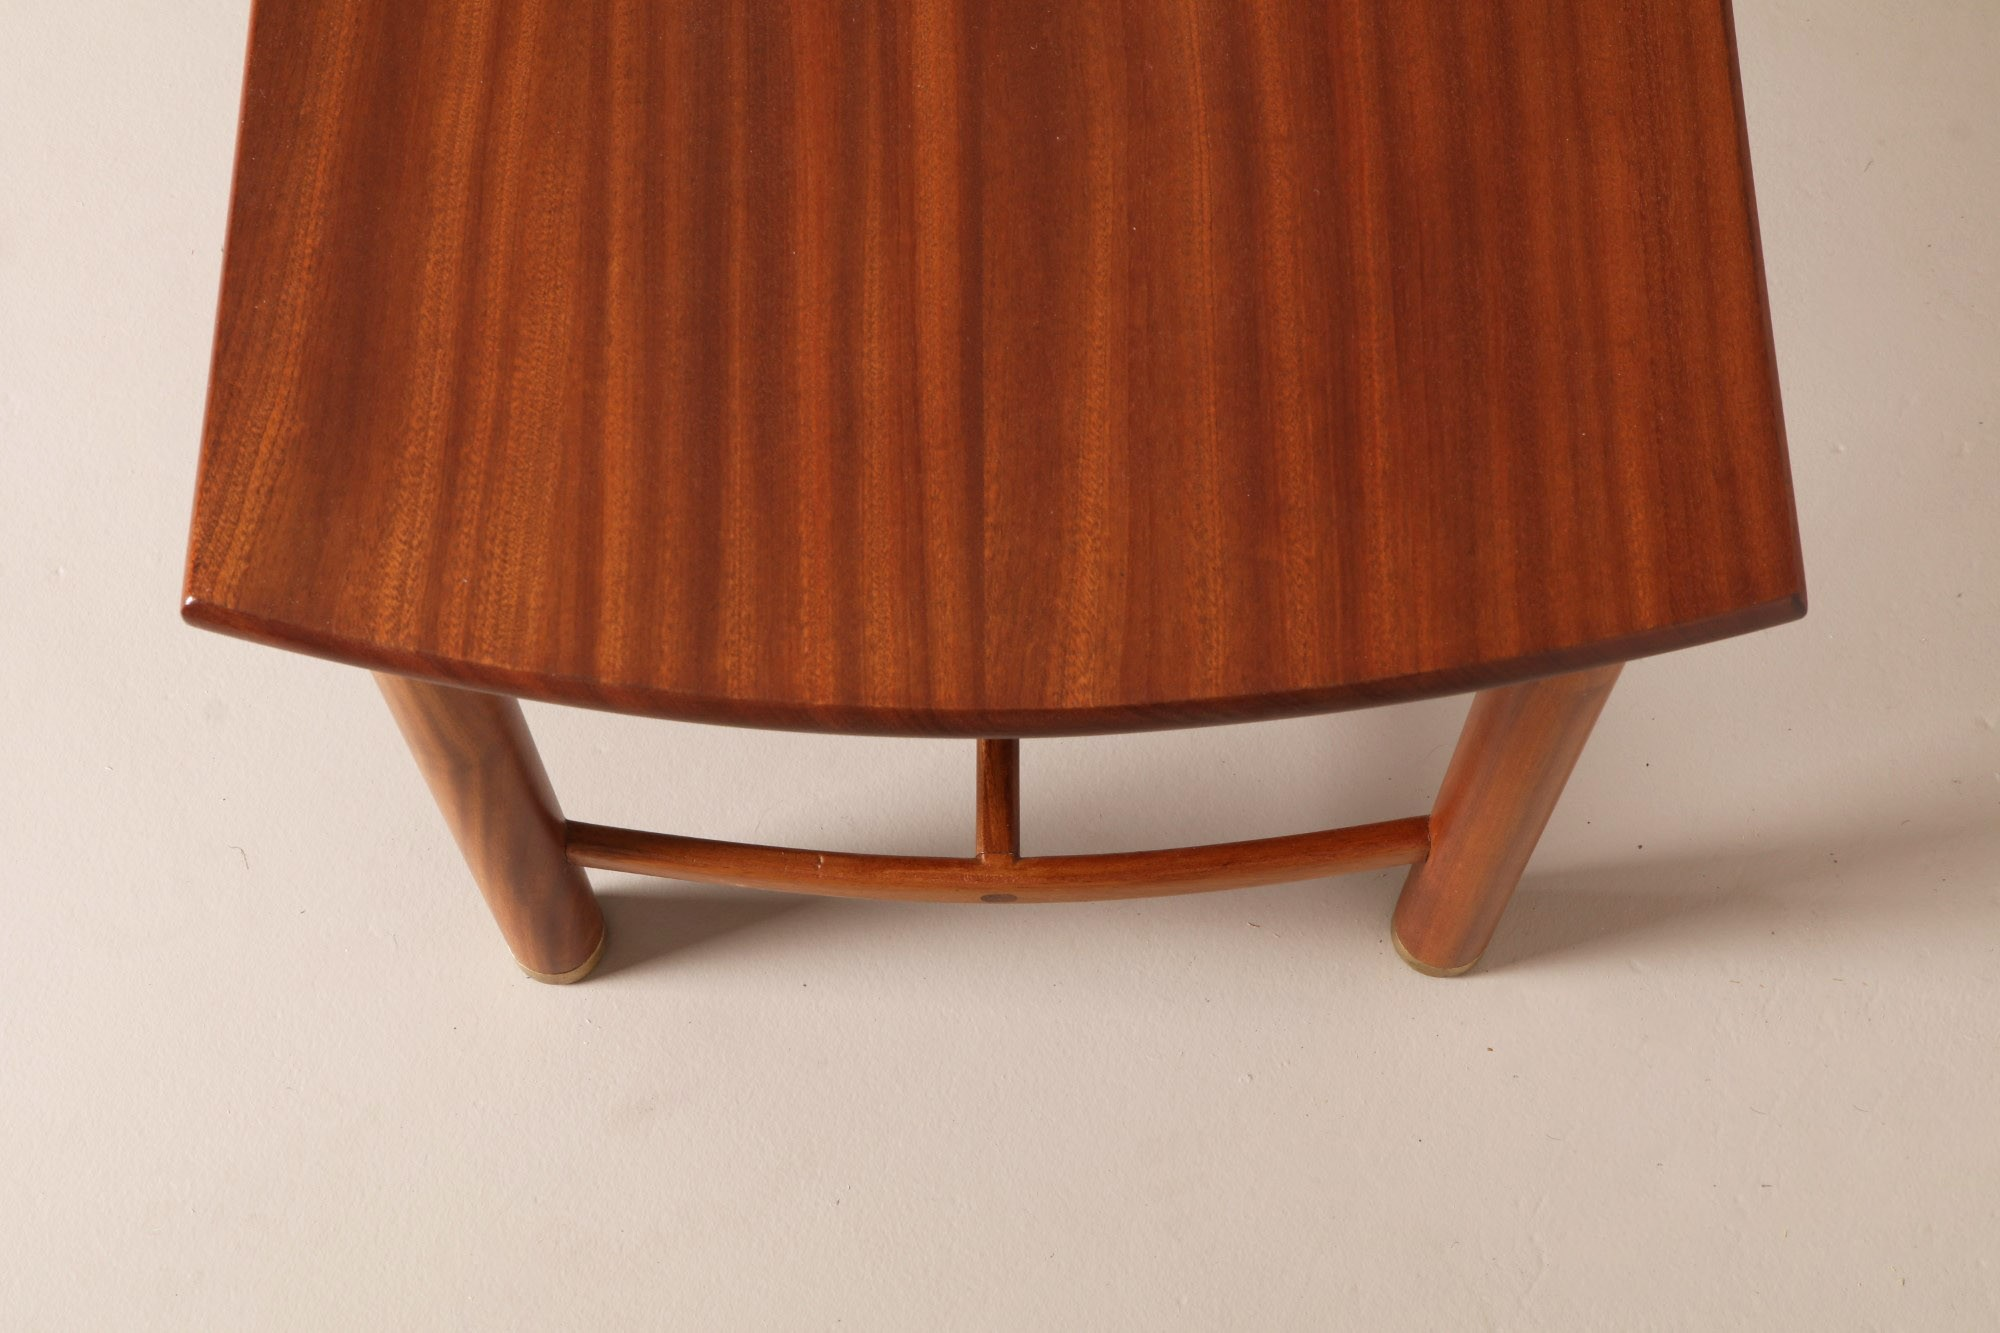 Stunning Long Line John Tabraham (attr) Coffee Table by D.S Vorster